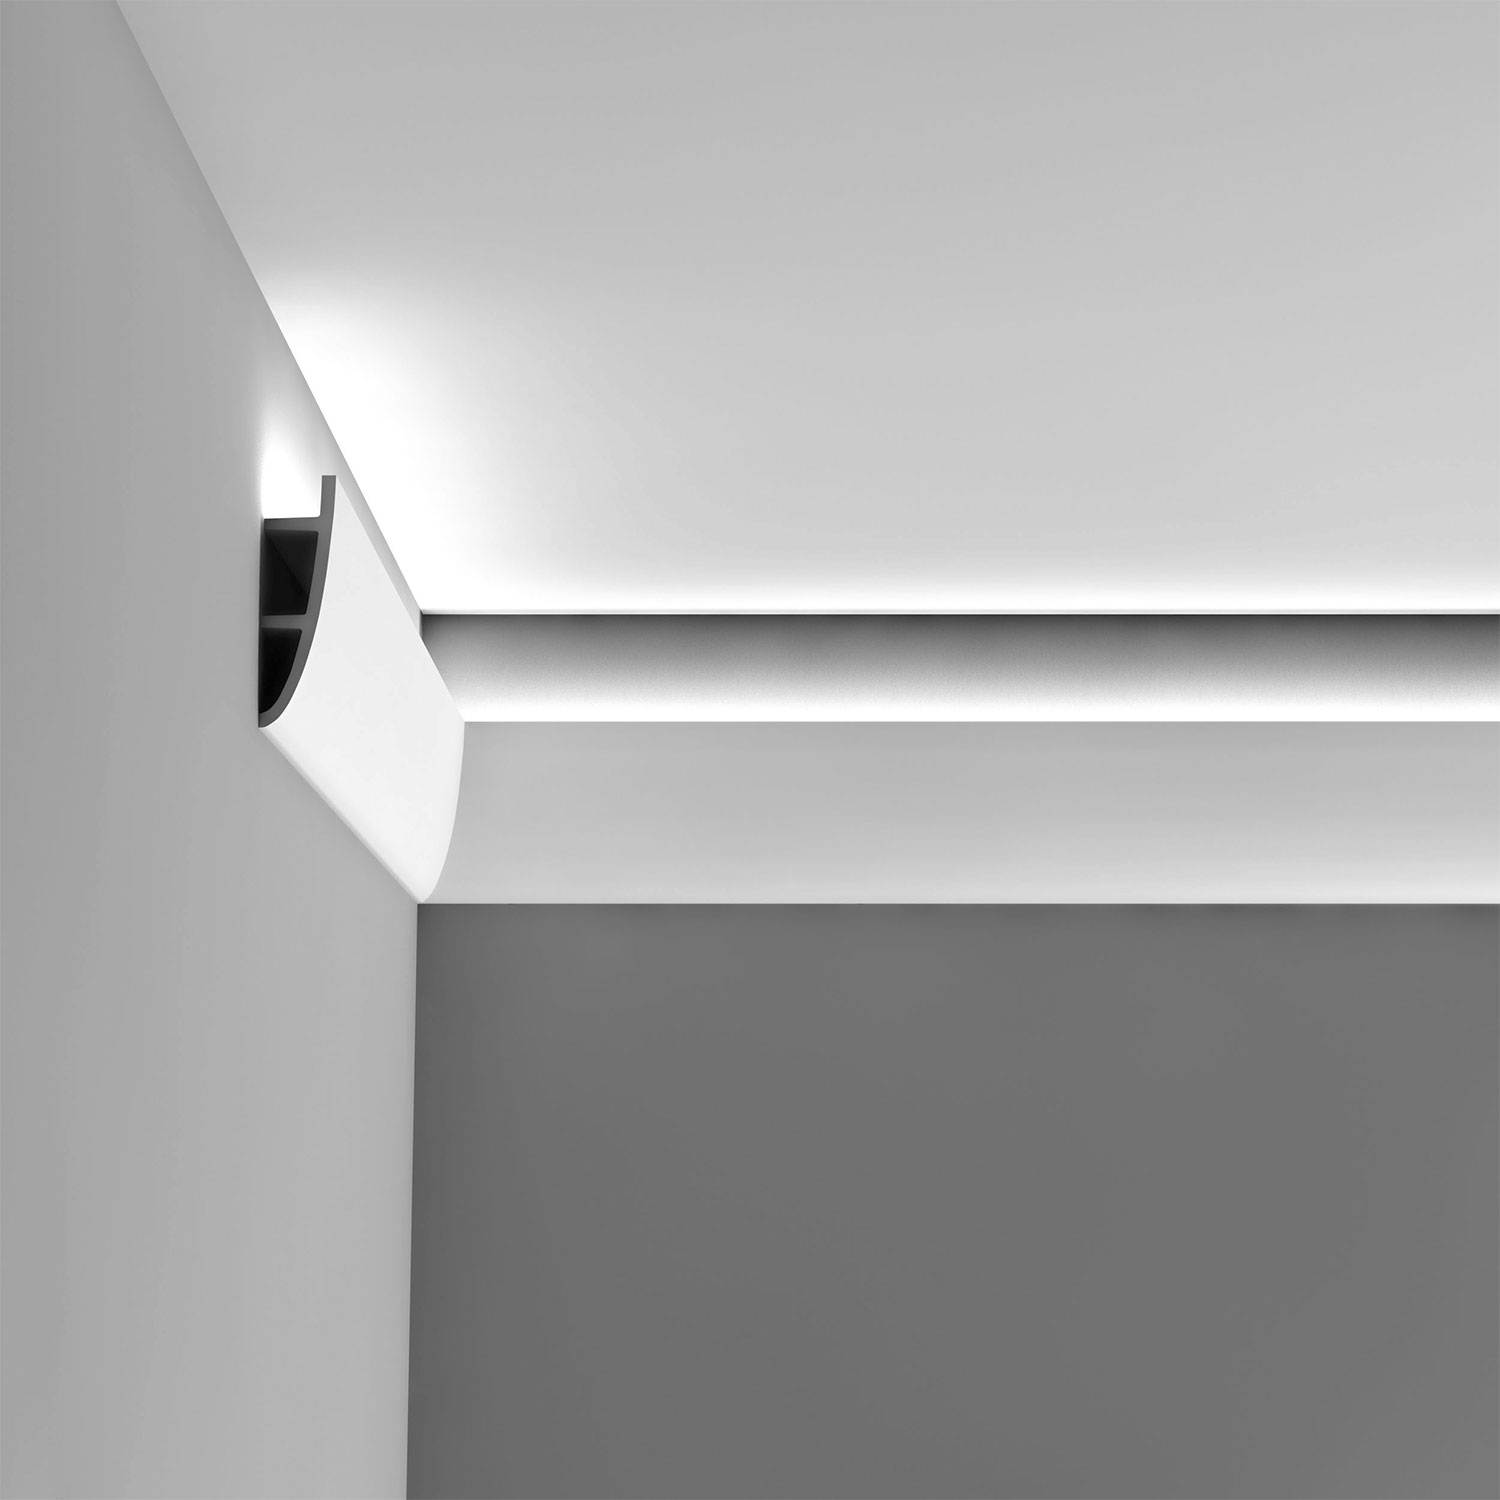 crown moulding lighting. Moulding For Indirect Lighting Crown O